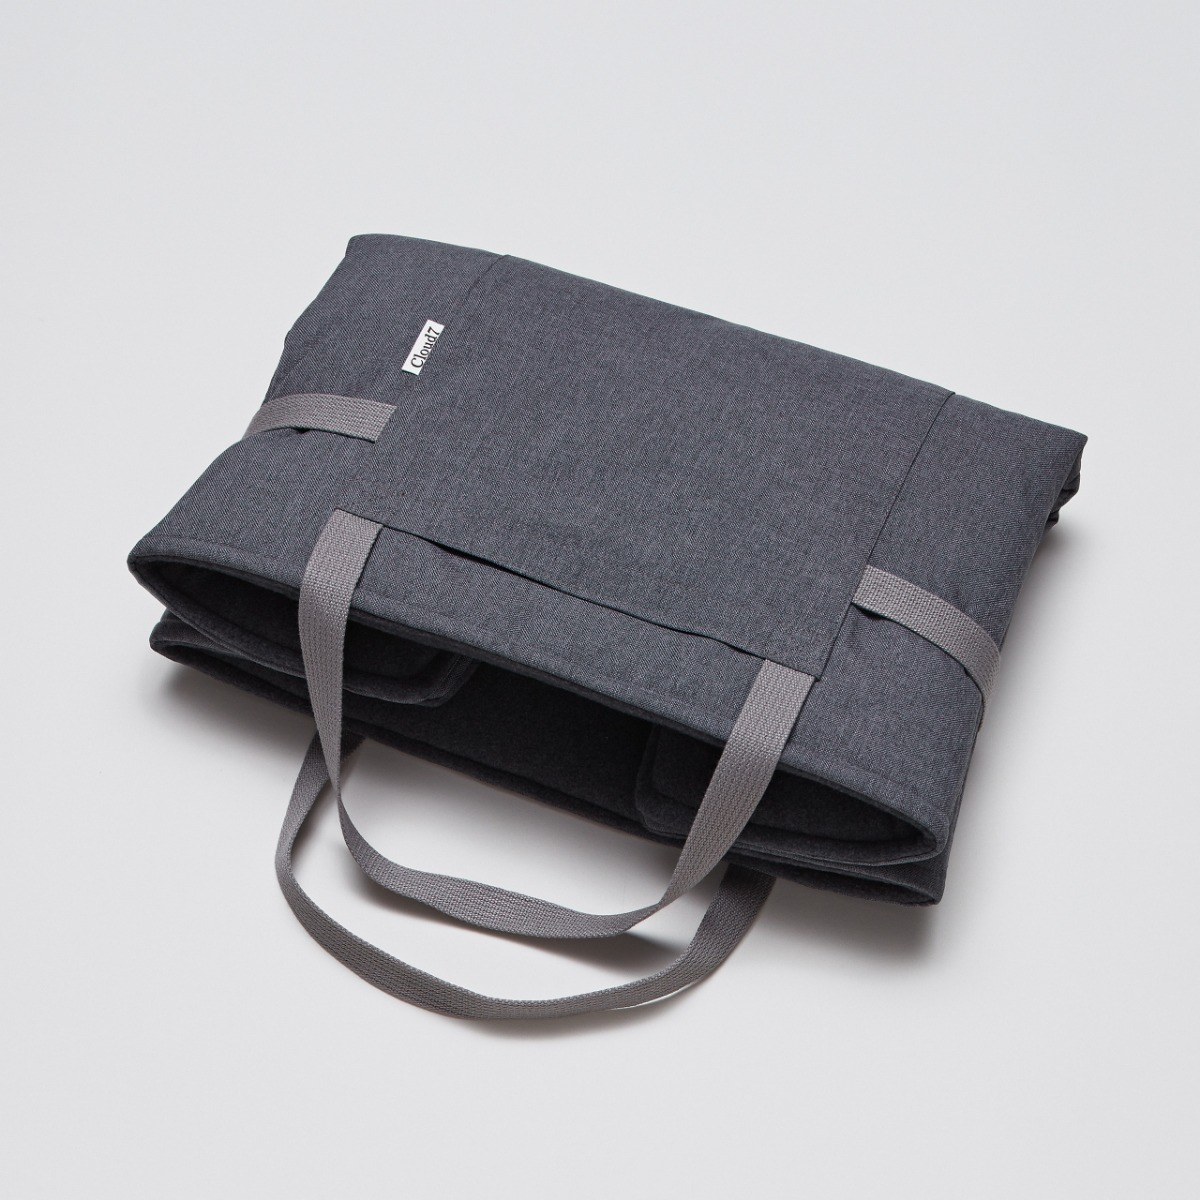 TRAVEL BED WATERPROOF MID GREY - DARK GREY